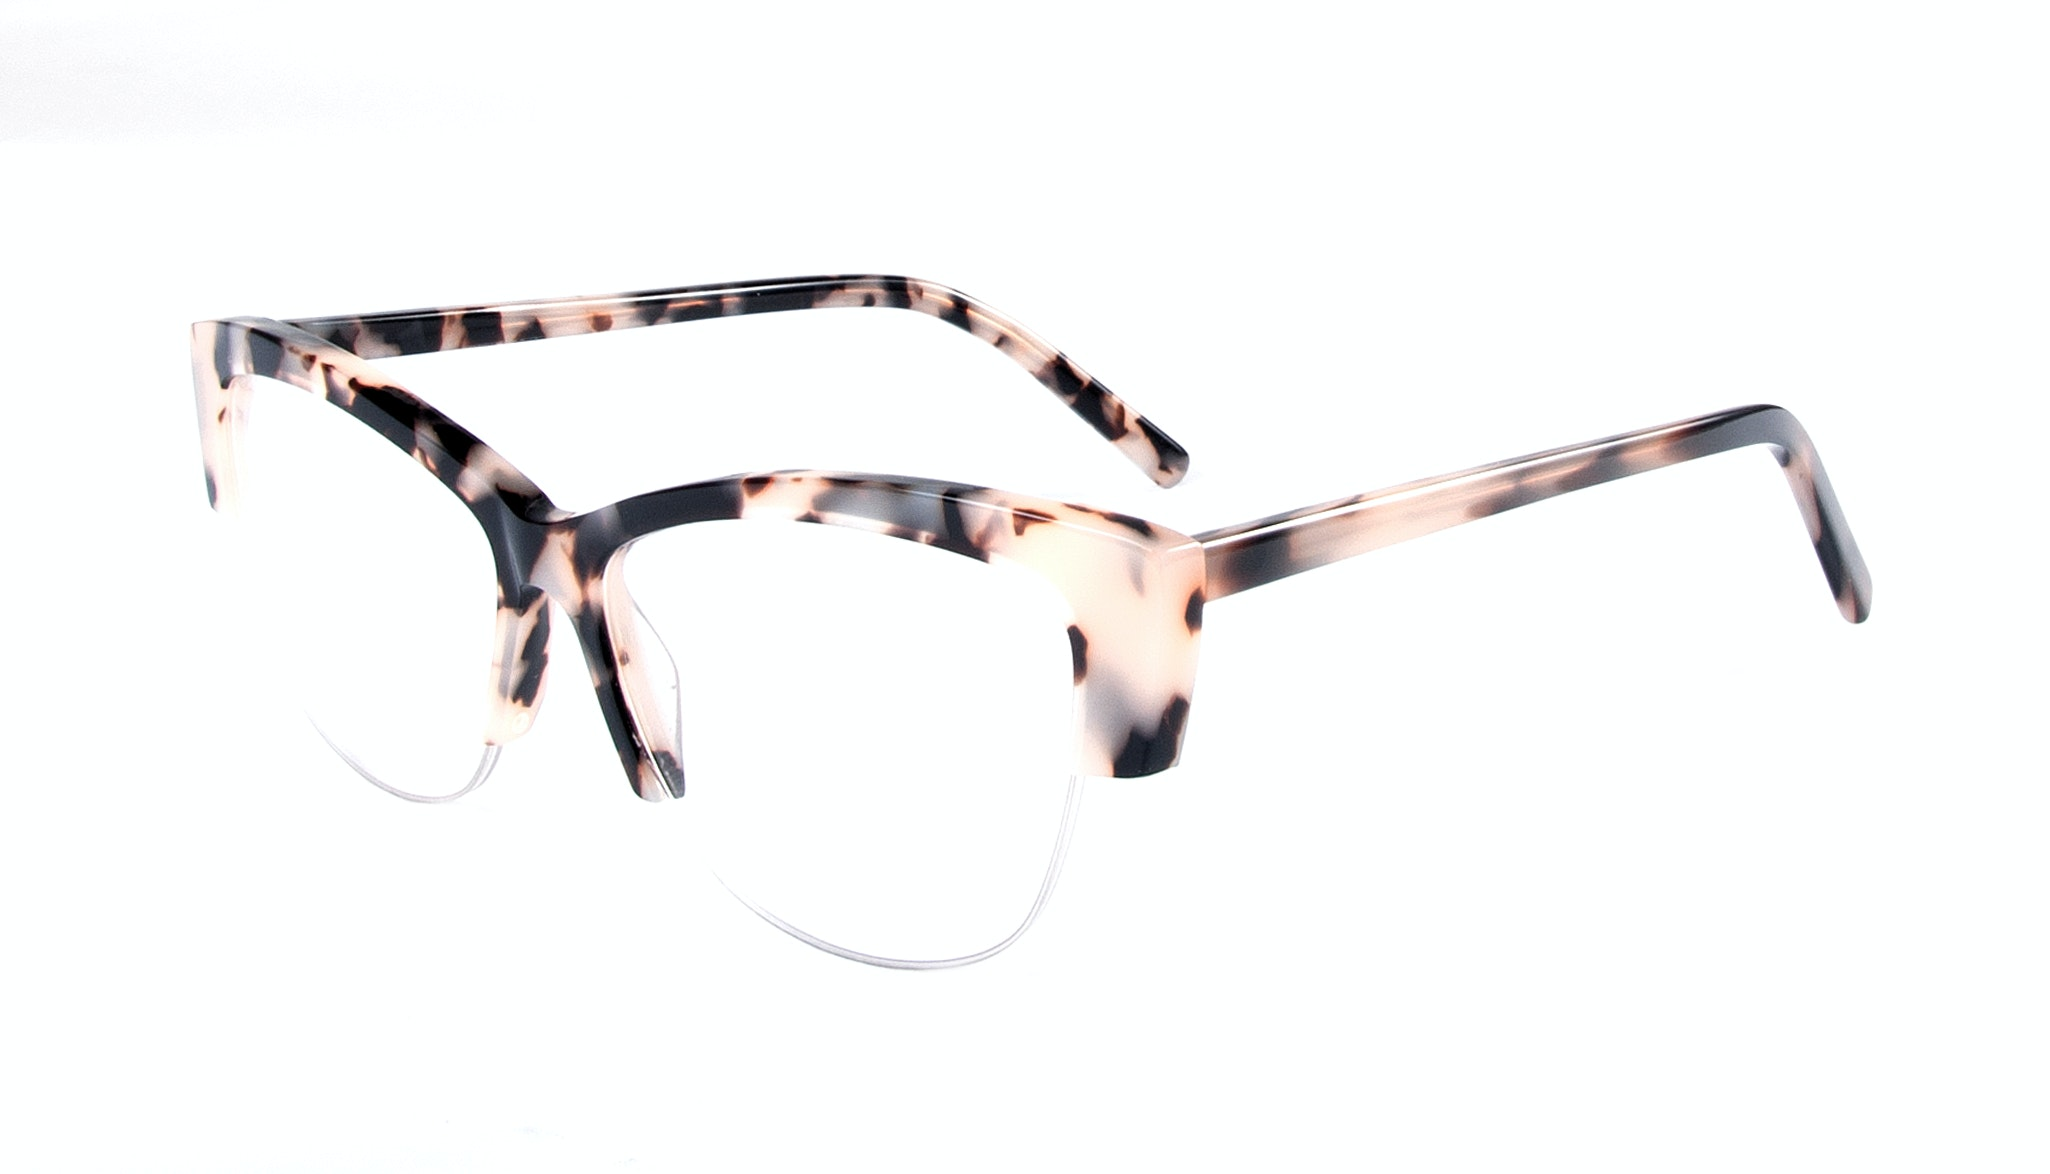 Affordable Fashion Glasses Cat Eye Semi-Rimless Eyeglasses Women Dolled Up Light Granite Tilt